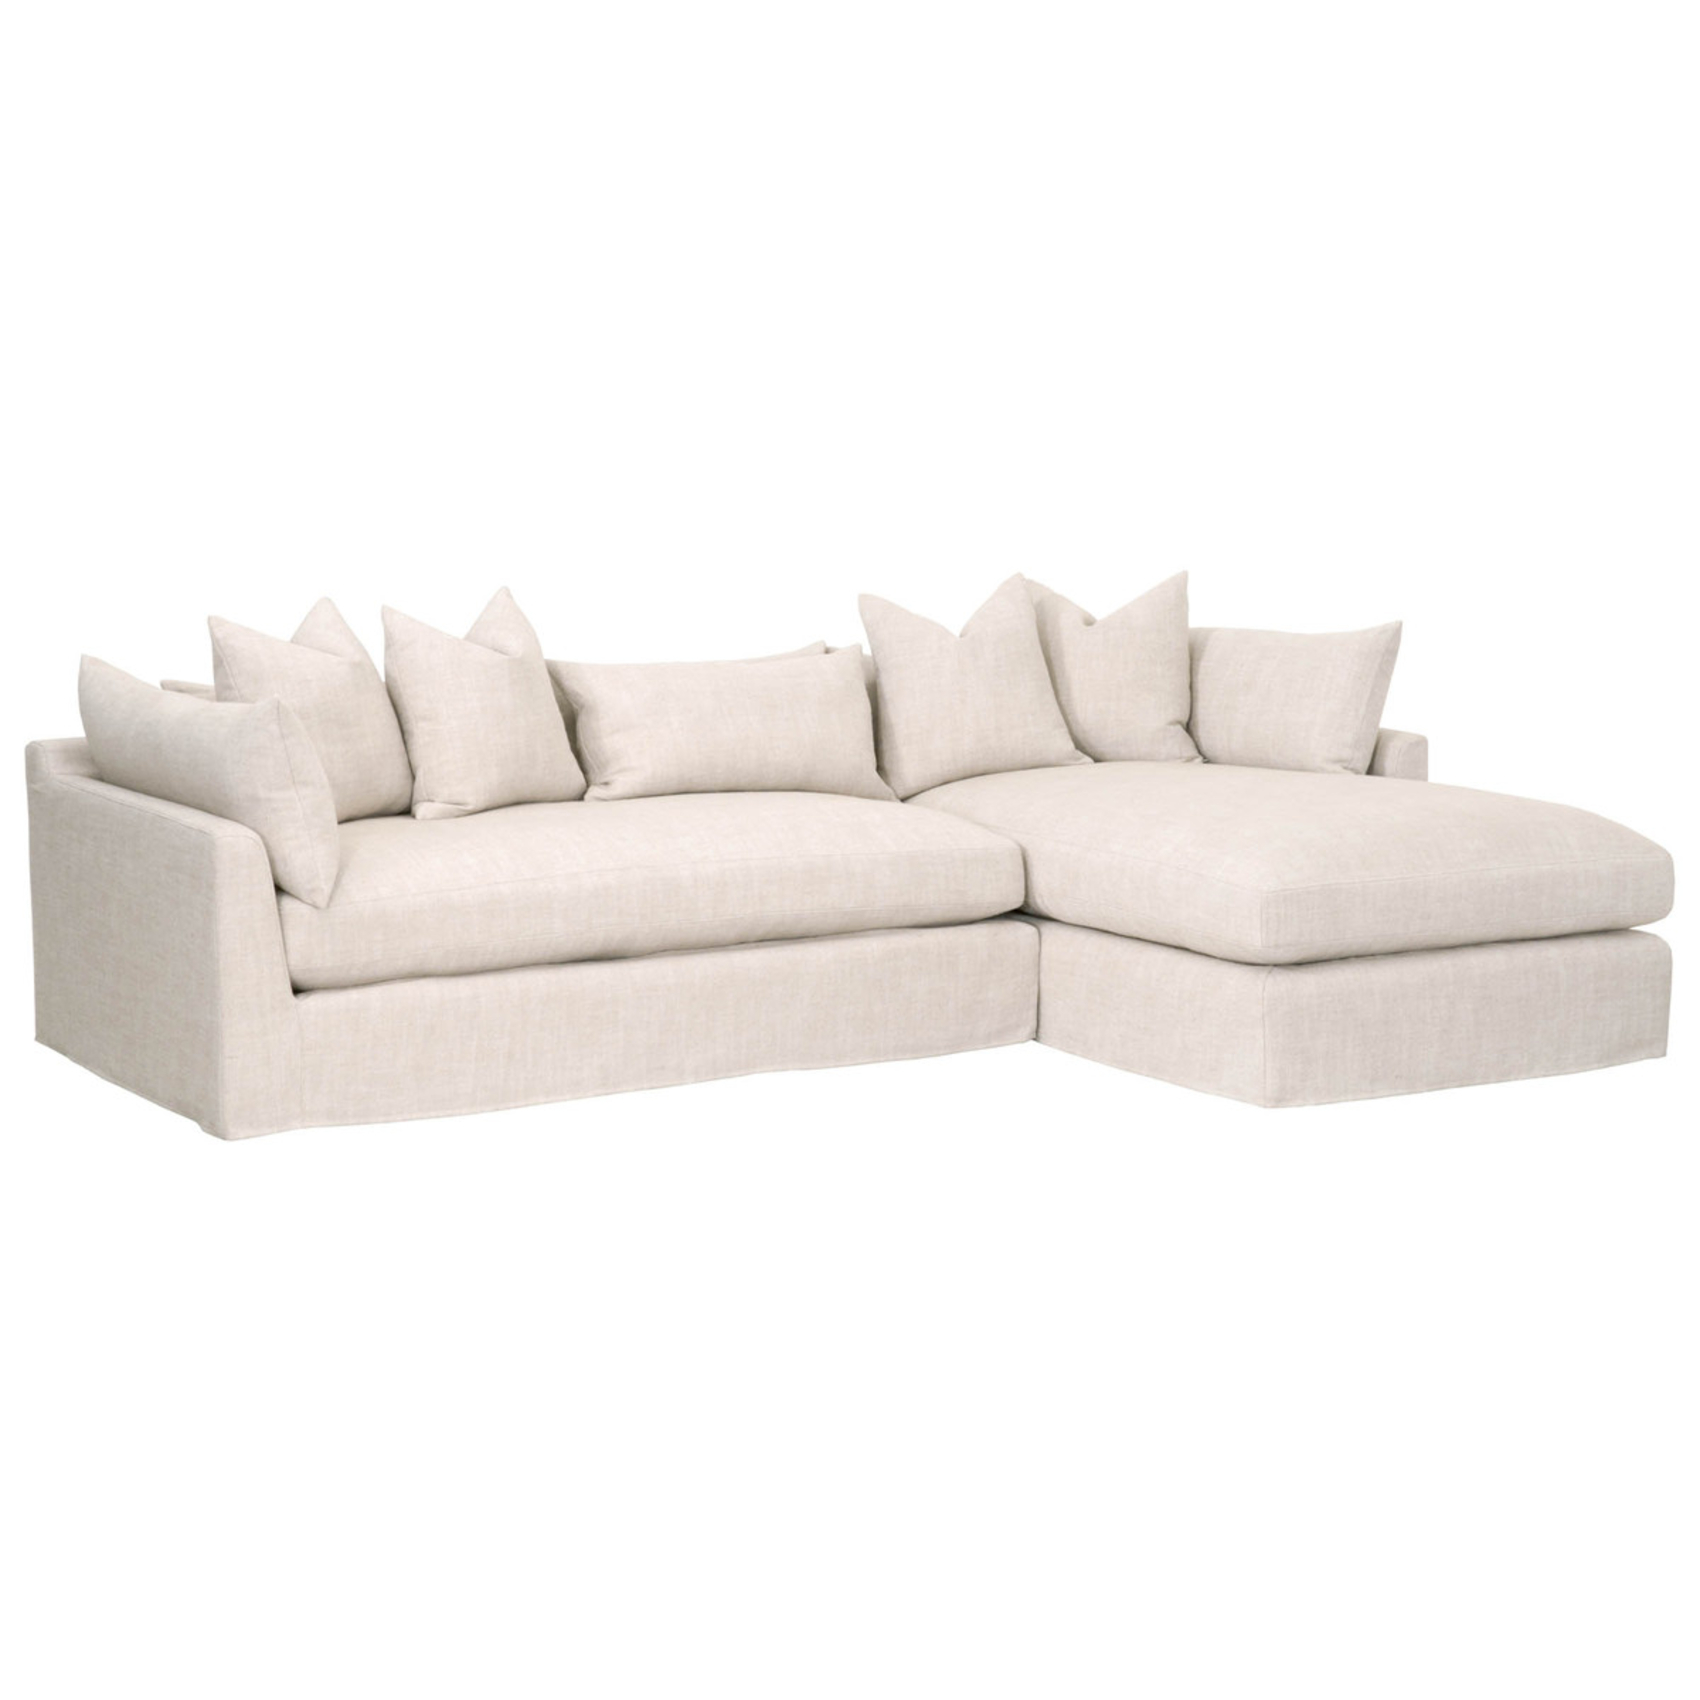 Nathan Modern Classic Beige Slipcovered Sectional Sofa - Right Arm Facing